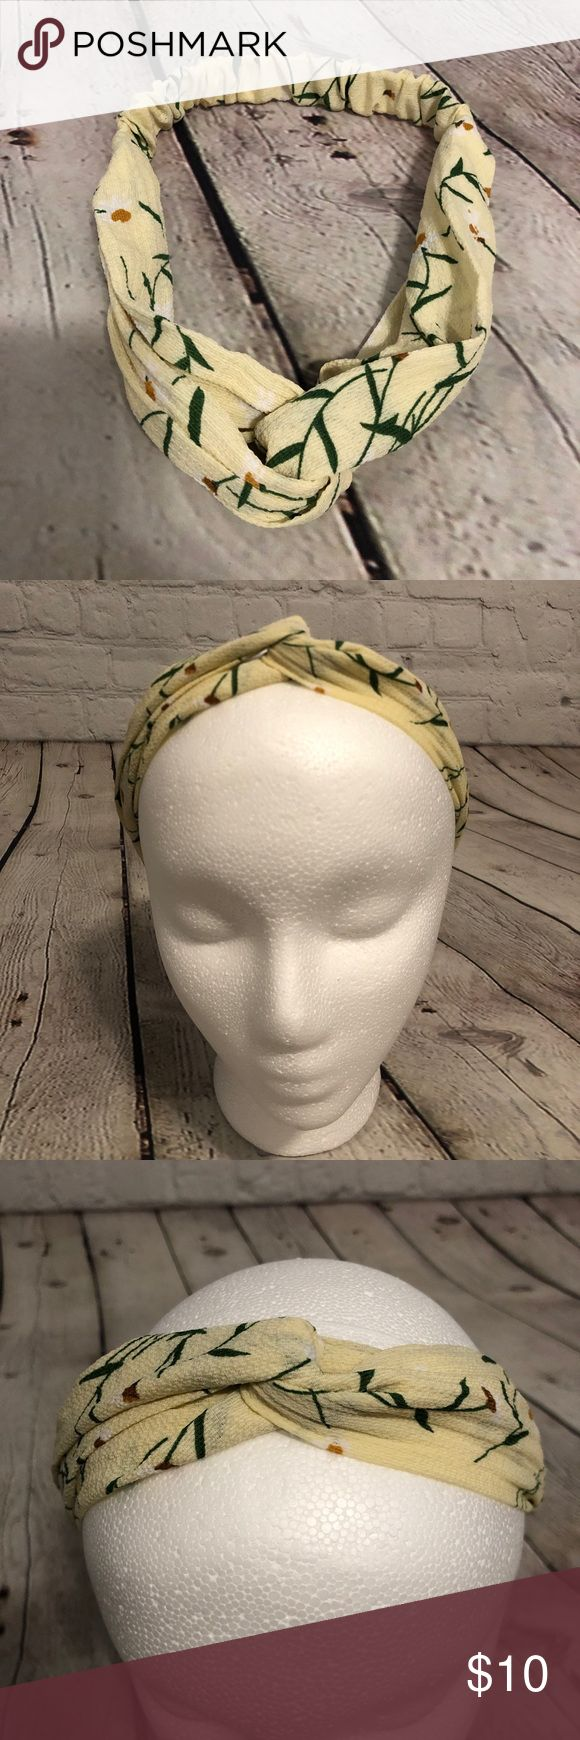 Knotted Boho Headband Pastel Yellow White Floral This knotted headband is super cute. It has elastic inside the fabric and it's stretchy and comfort...